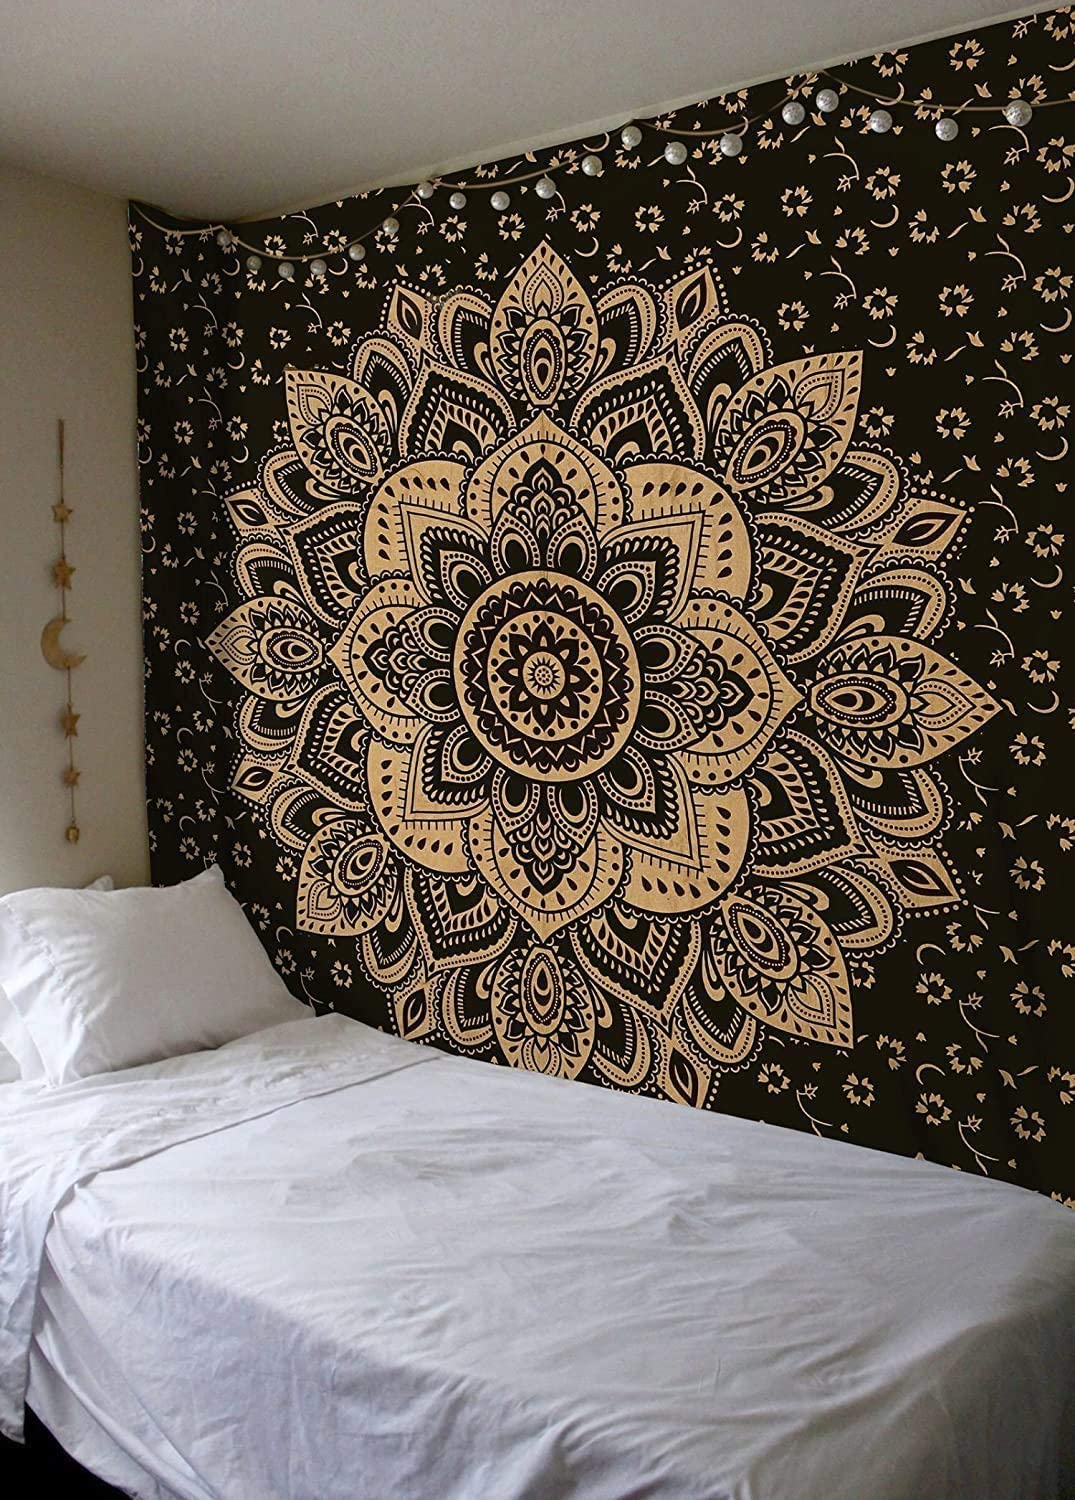 Popular Handicrafts Kp736 The Passion Gold Ombre Tapestry Indian Mandala Wall Art, Hippie Wall Hanging, Bohemian Bedspread 84x54 Inches(215x140cms) black